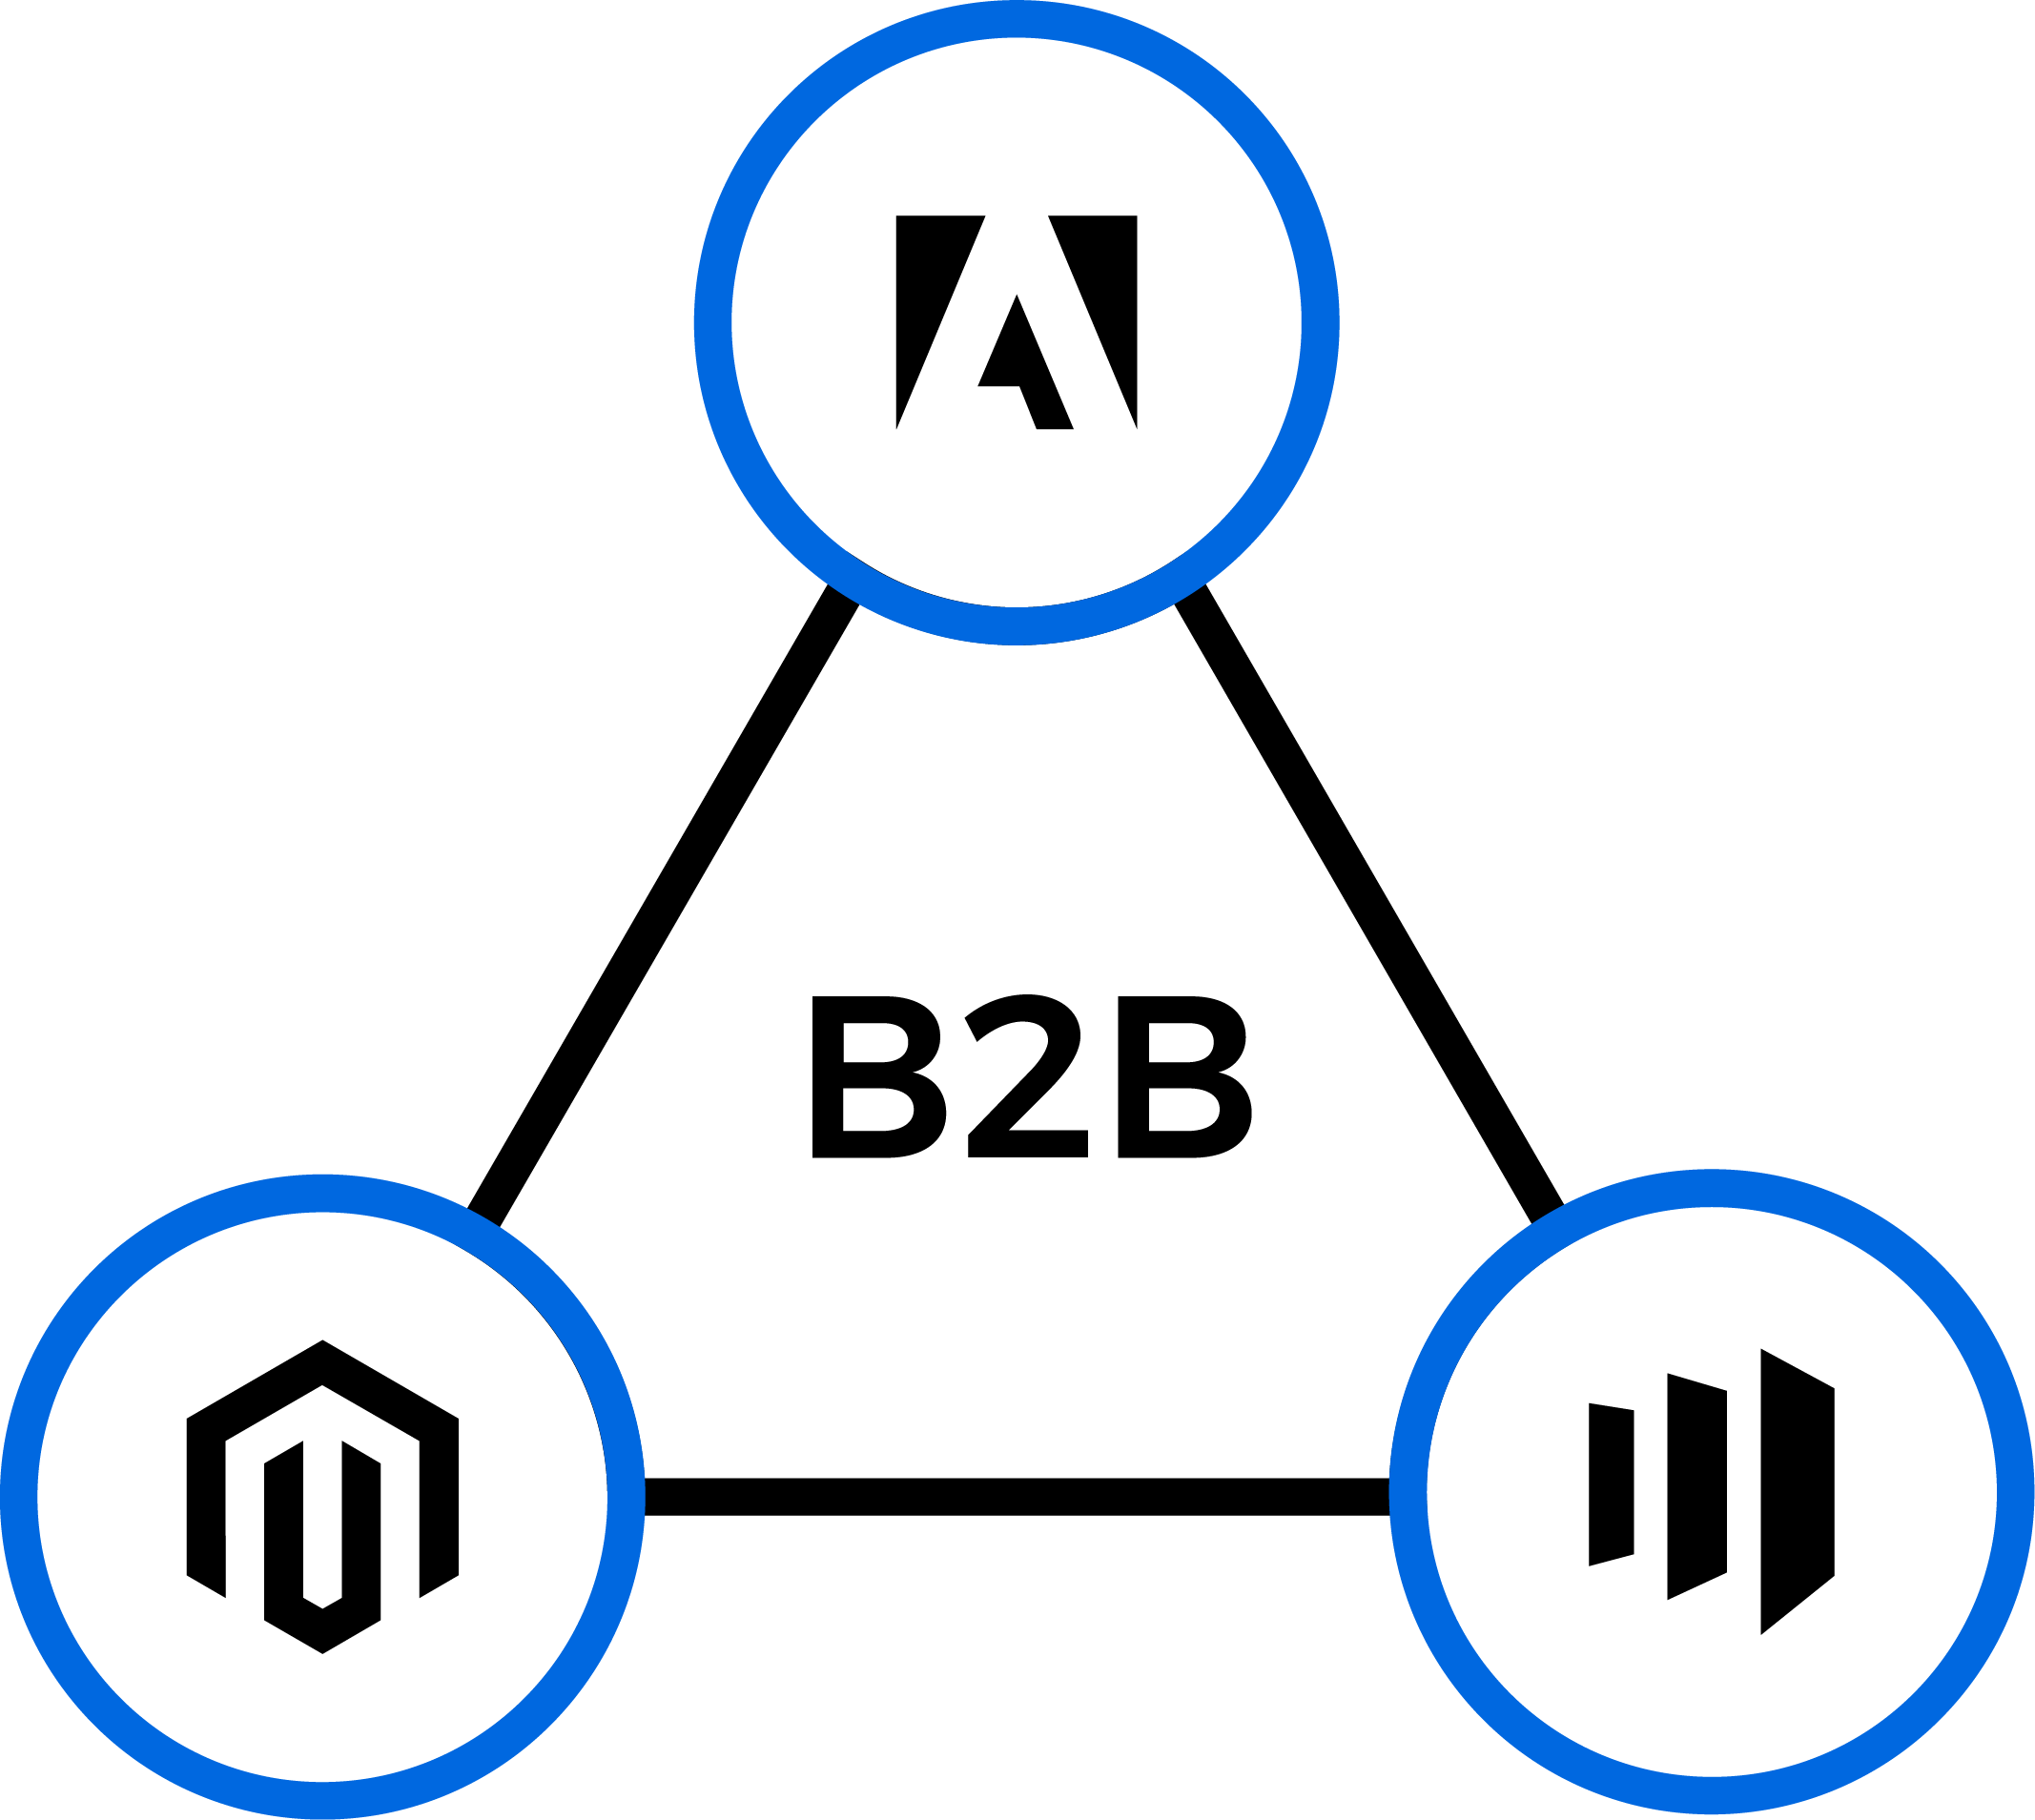 TA Digital's B2B expertise with Adobe, Magento and Marketo